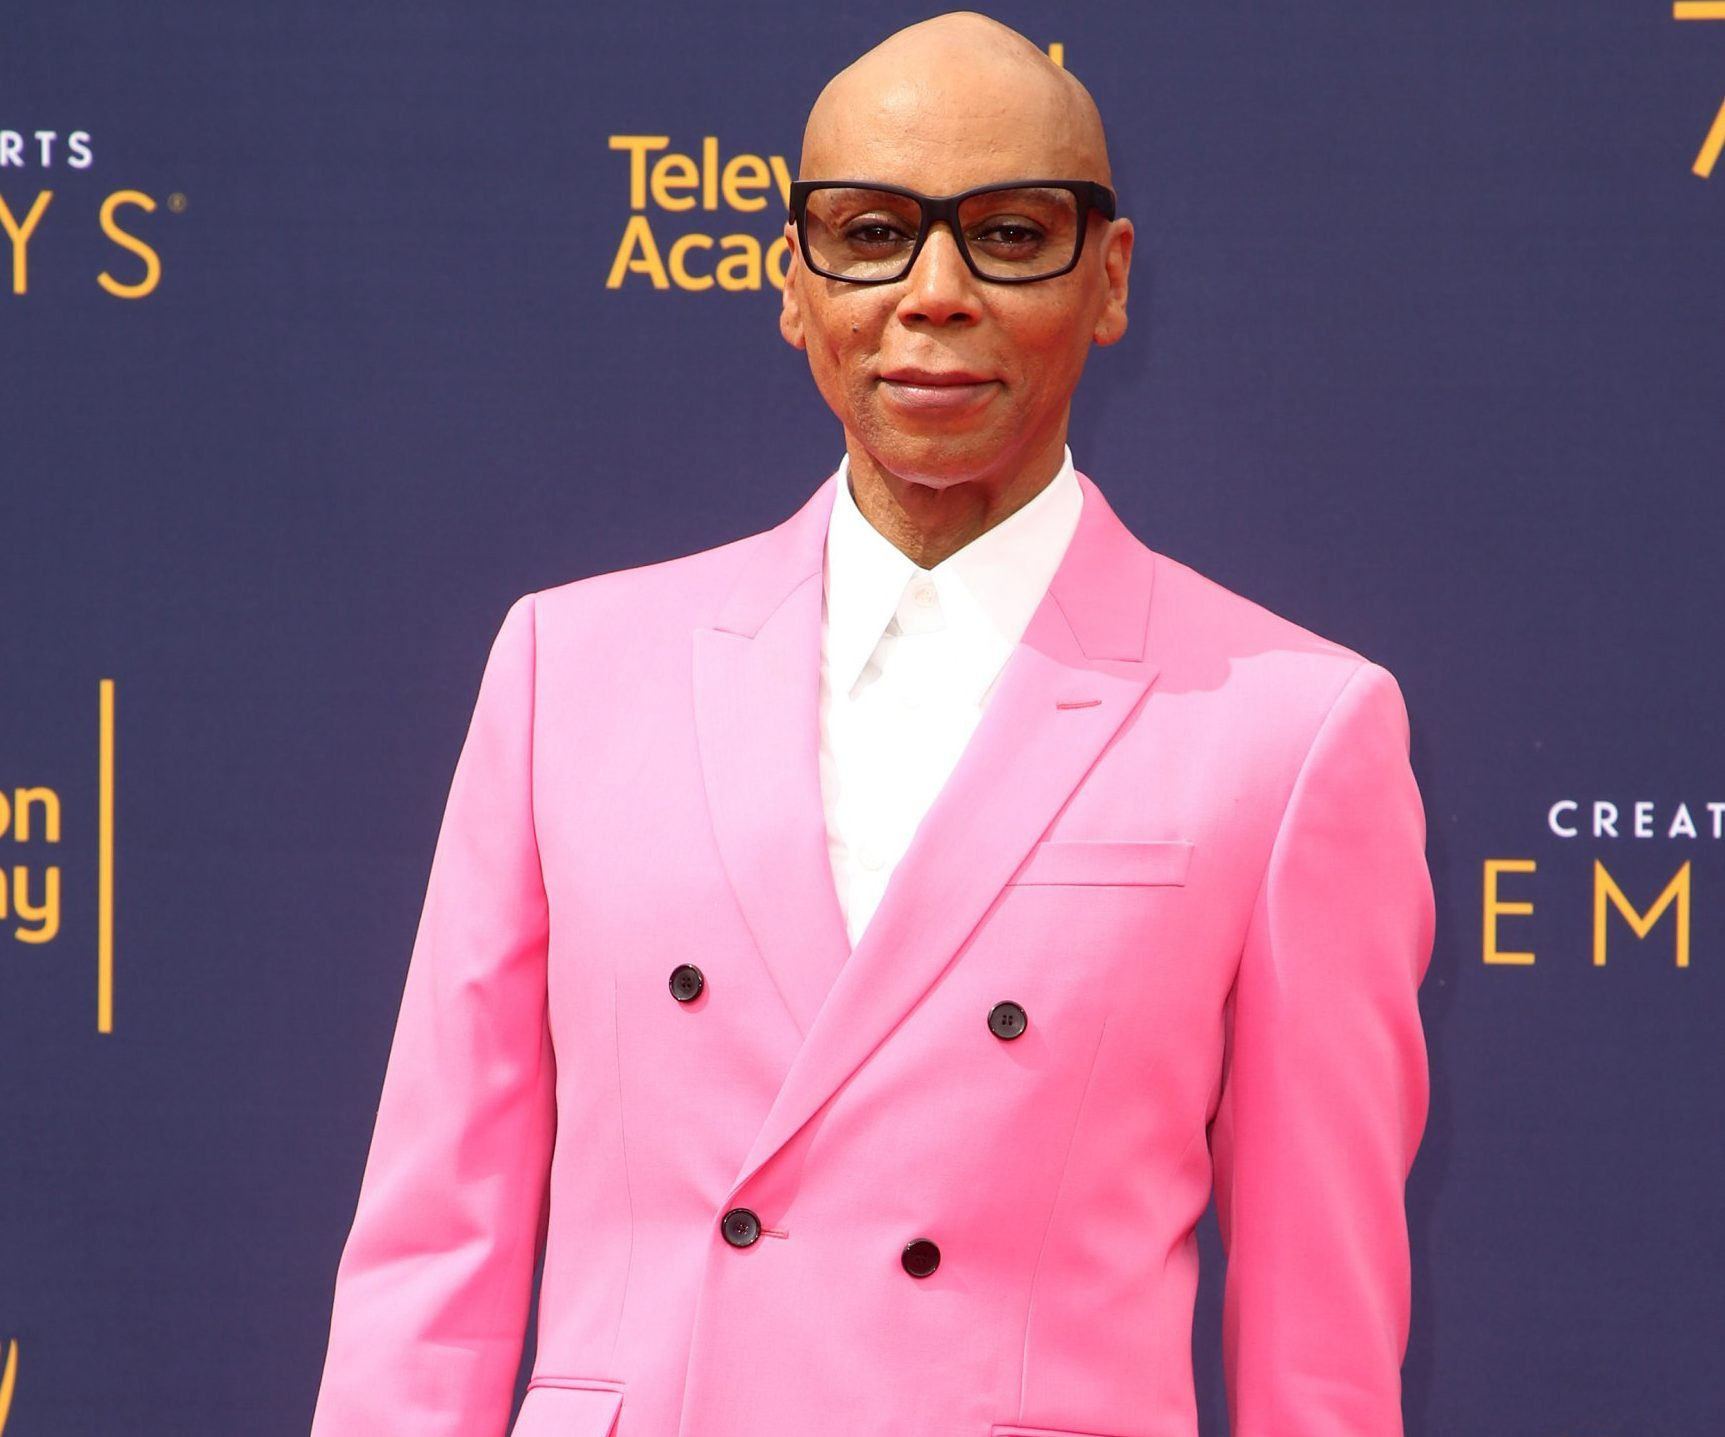 2018 Creative Arts Emmy Awards - Day 2 Featuring: Rupaul Charles Where: Los Angeles, California, United States When: 10 Sep 2018 Credit: FayesVision/WENN.com